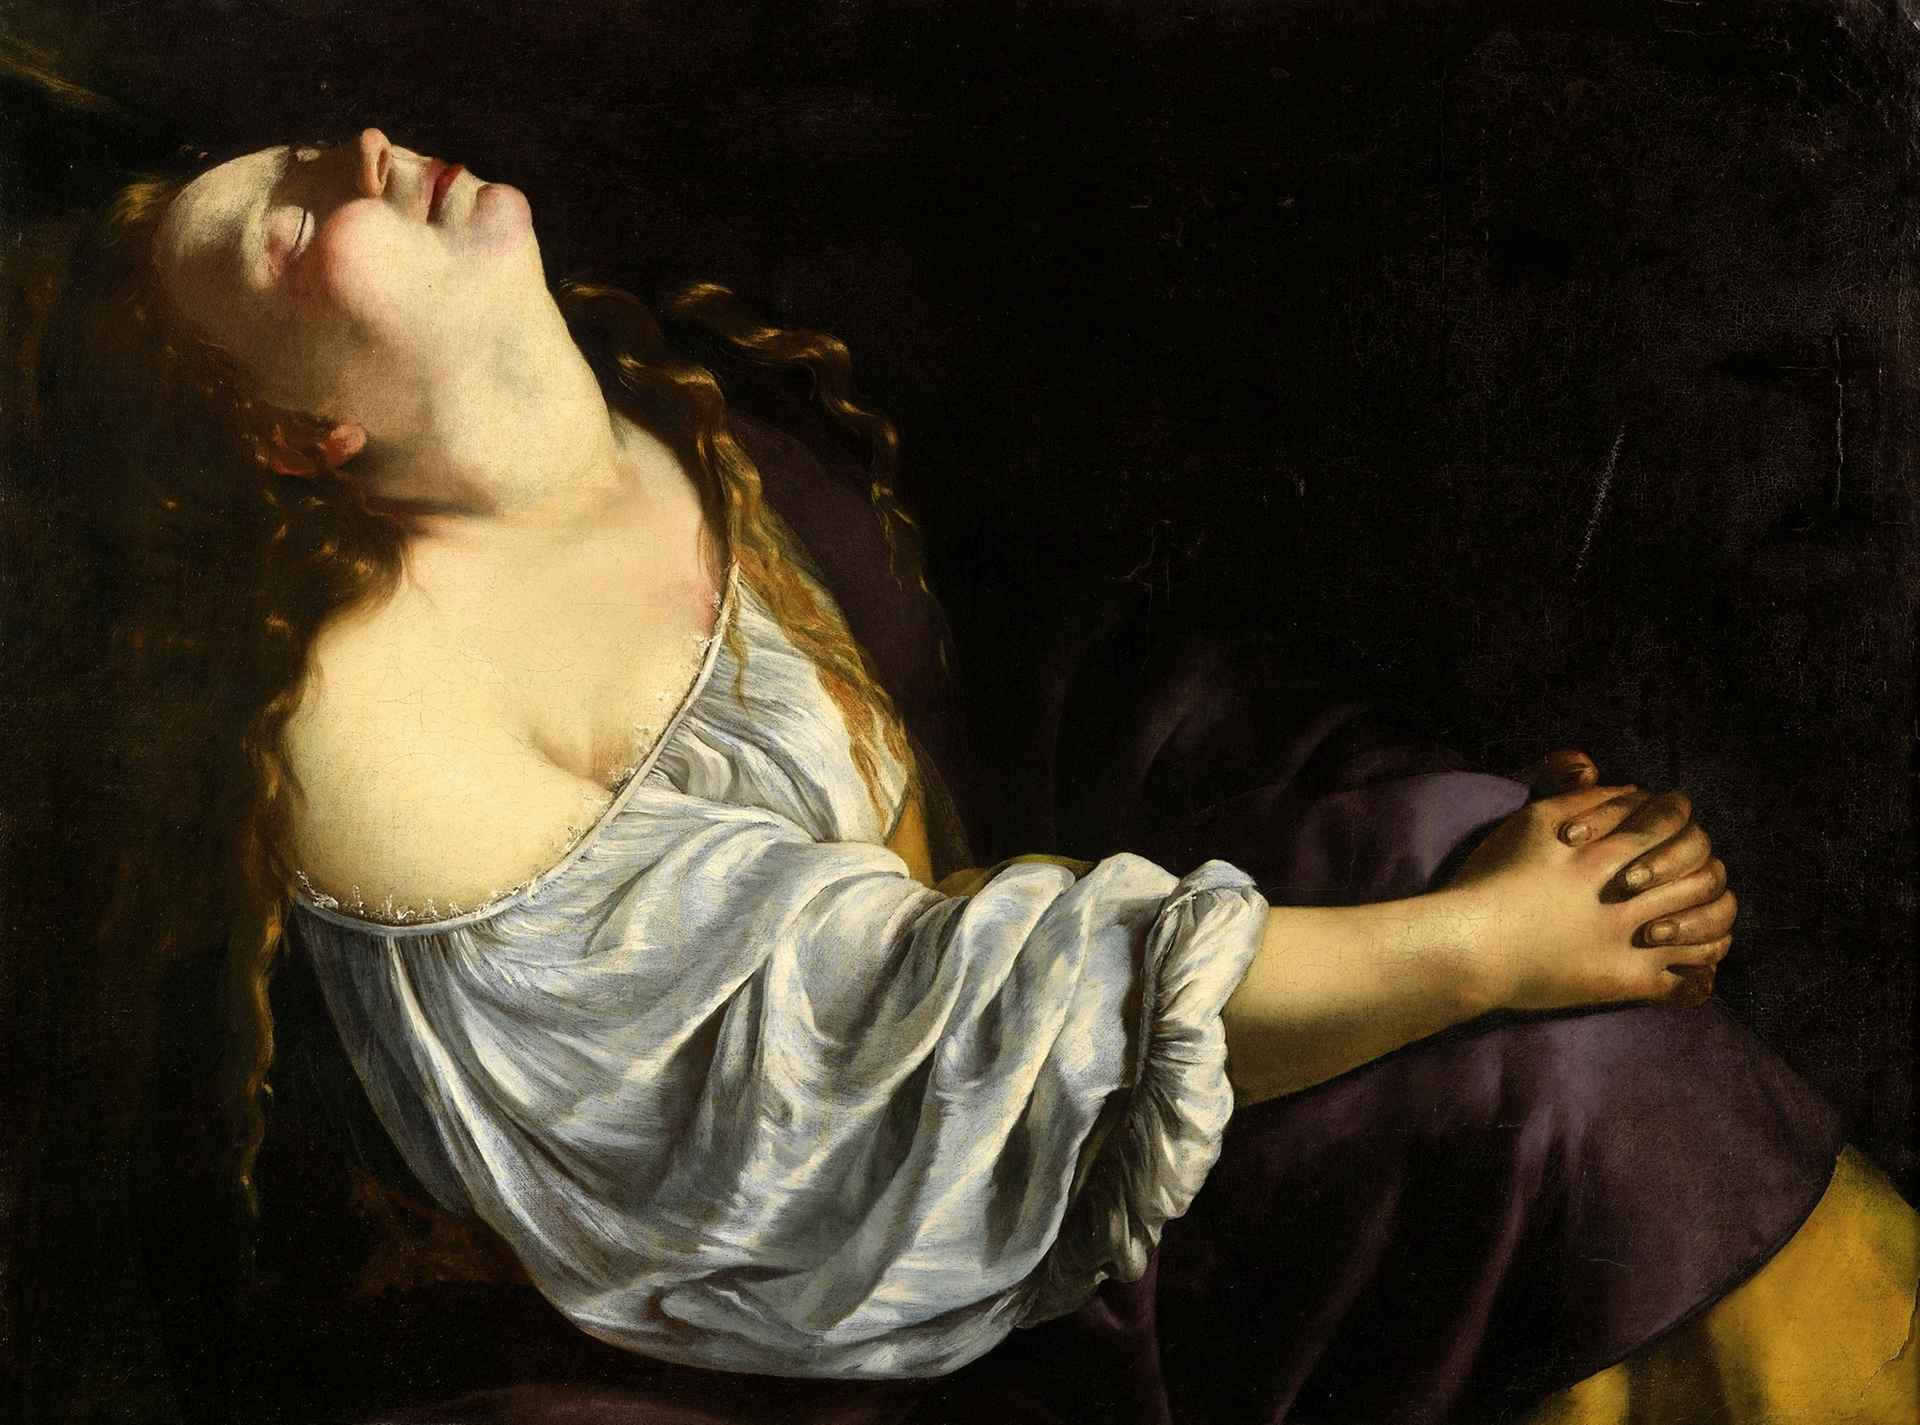 British singer and songwriter FKA twigs talking about the sensuous portrait of Mary Magdalene by Artemisia Gentileschi